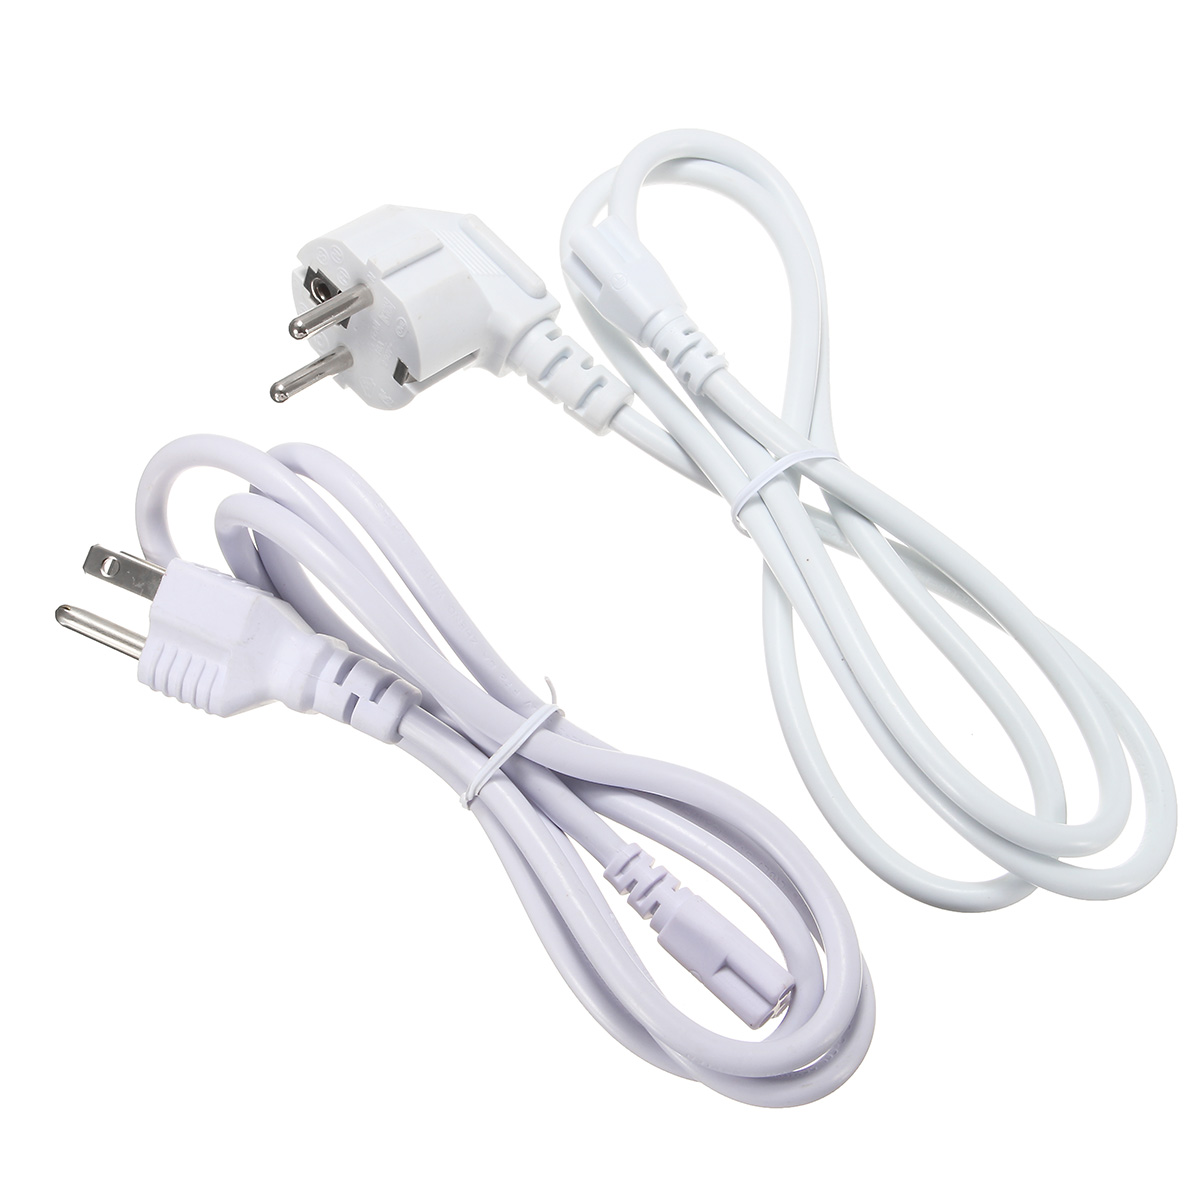 Power Cord Us Eu Plug Cord Two Wire Power Cord For Switching Power